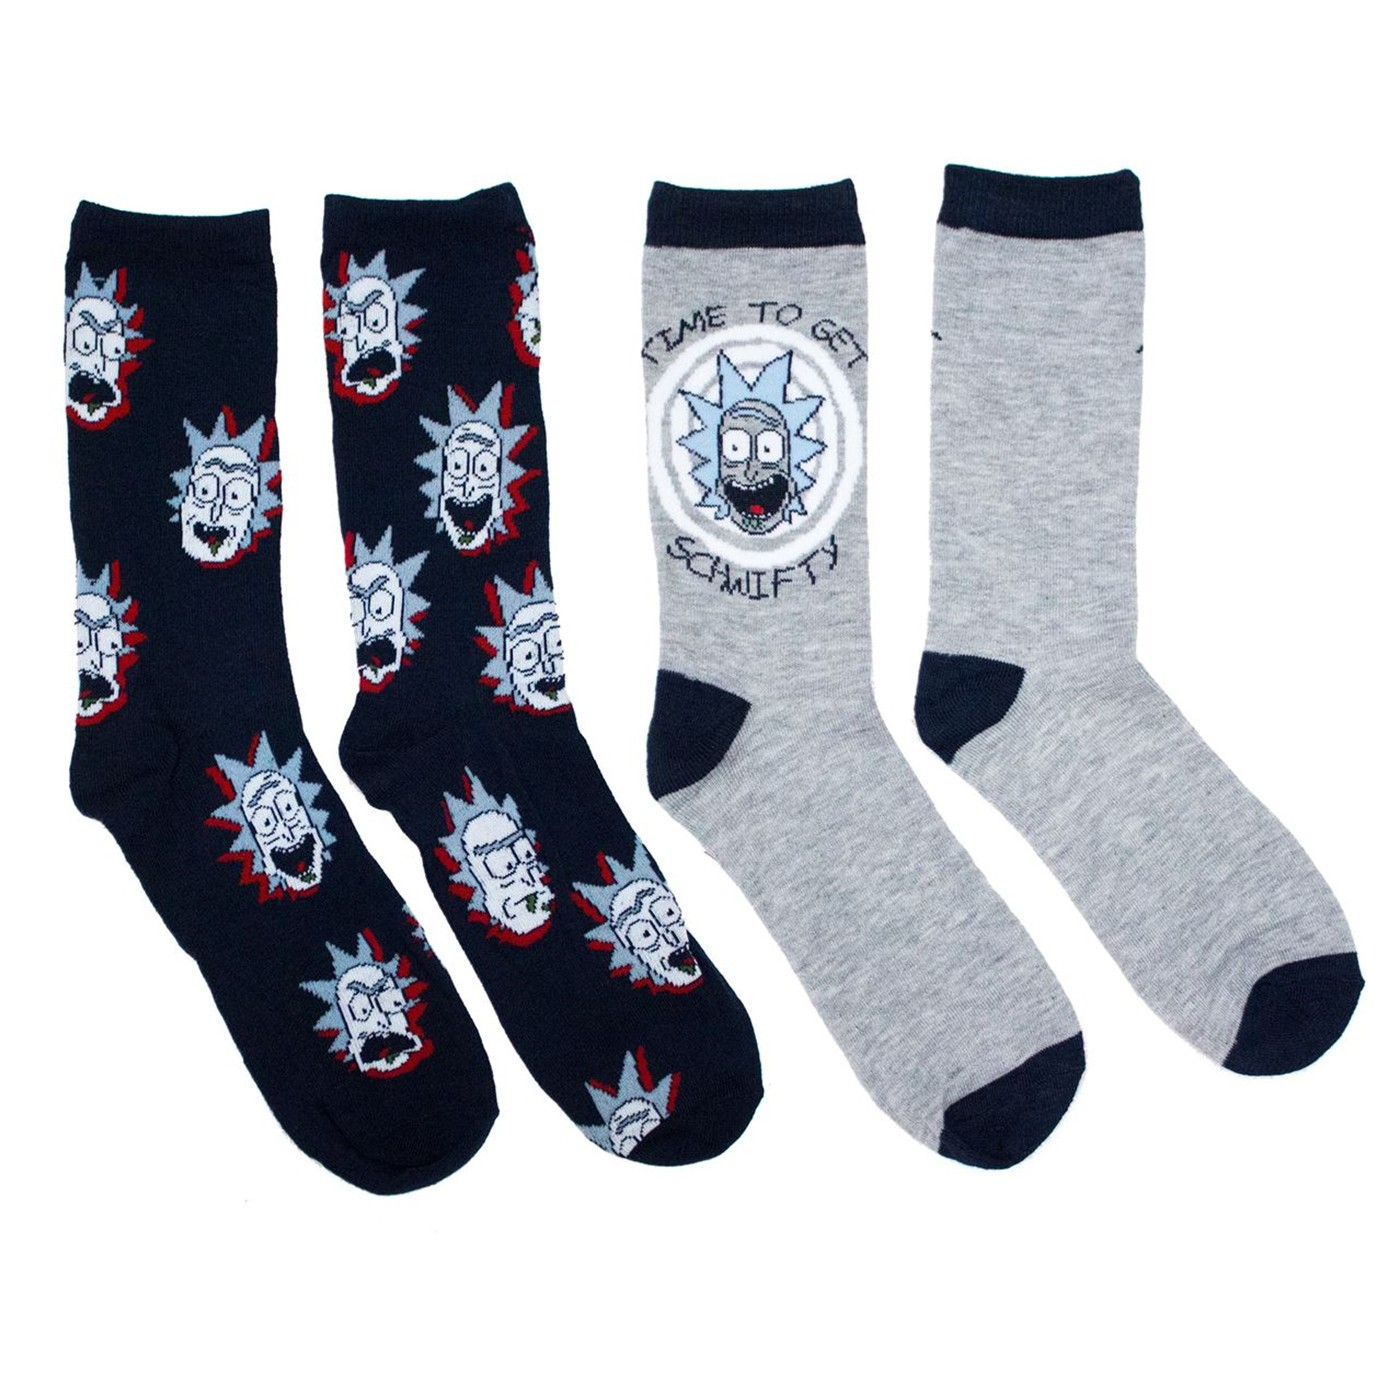 Rick and Morty 2-pack Crew Socks